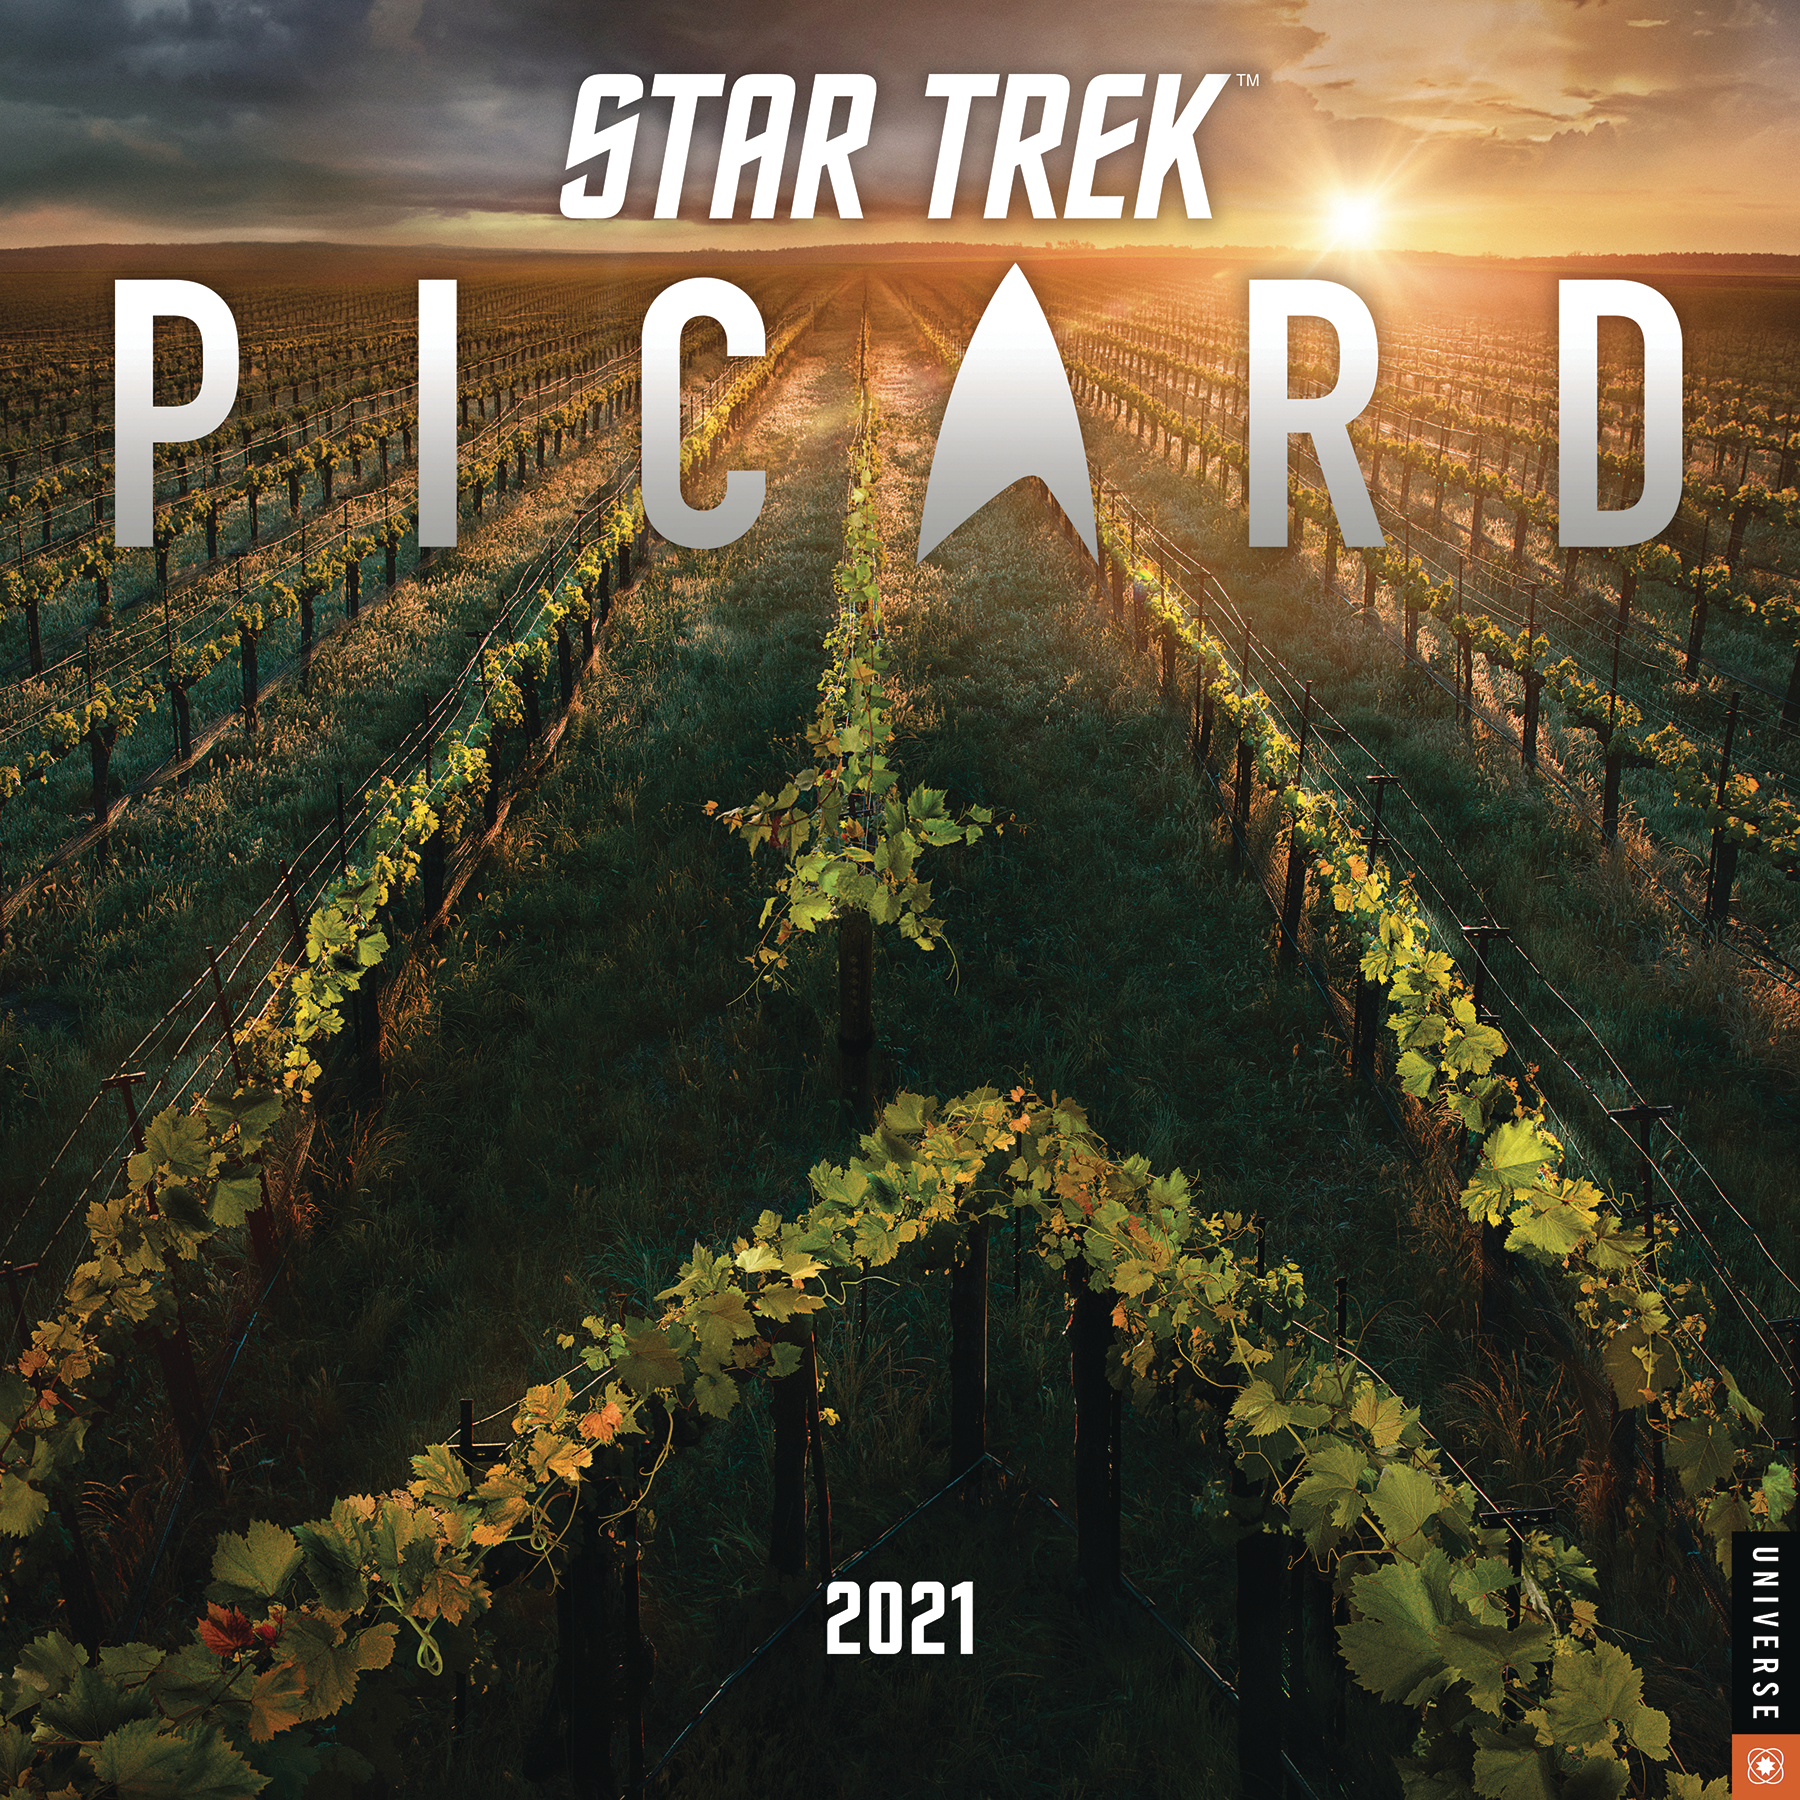 STAR TREK PICARD 2021 WALL CALENDAR